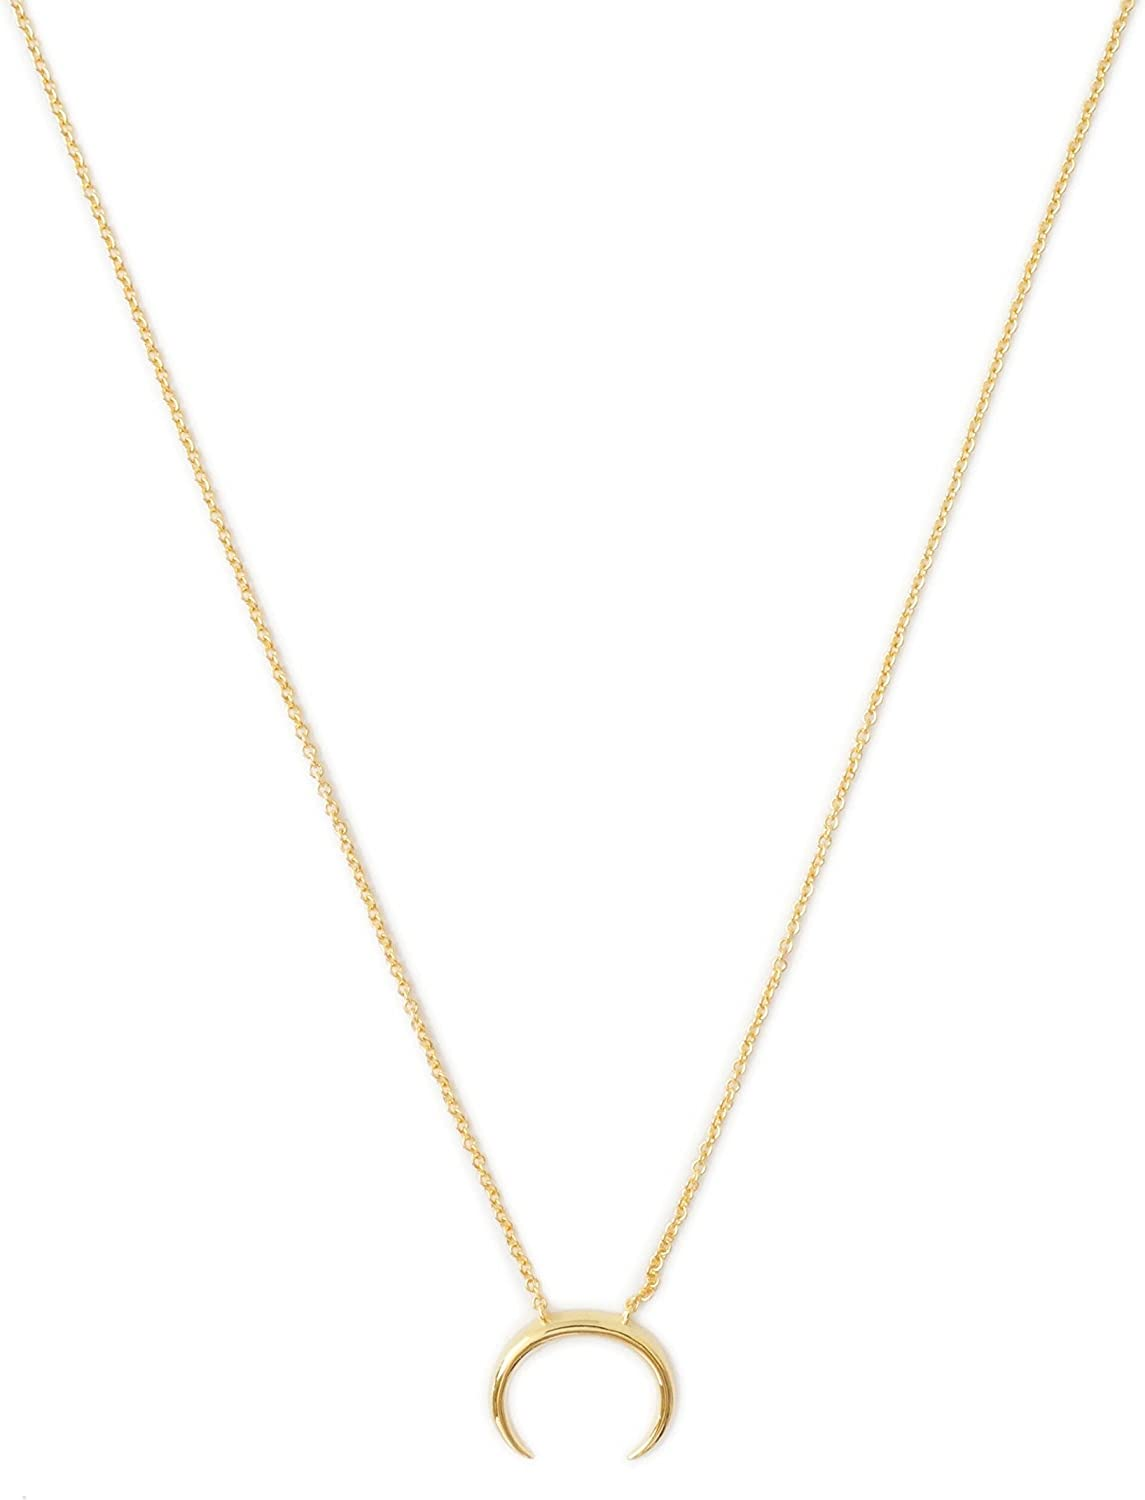 Jewels Obsession Cat Necklace 14K Rose Gold-plated 925 Silver Cat Pendant with 18 Necklace